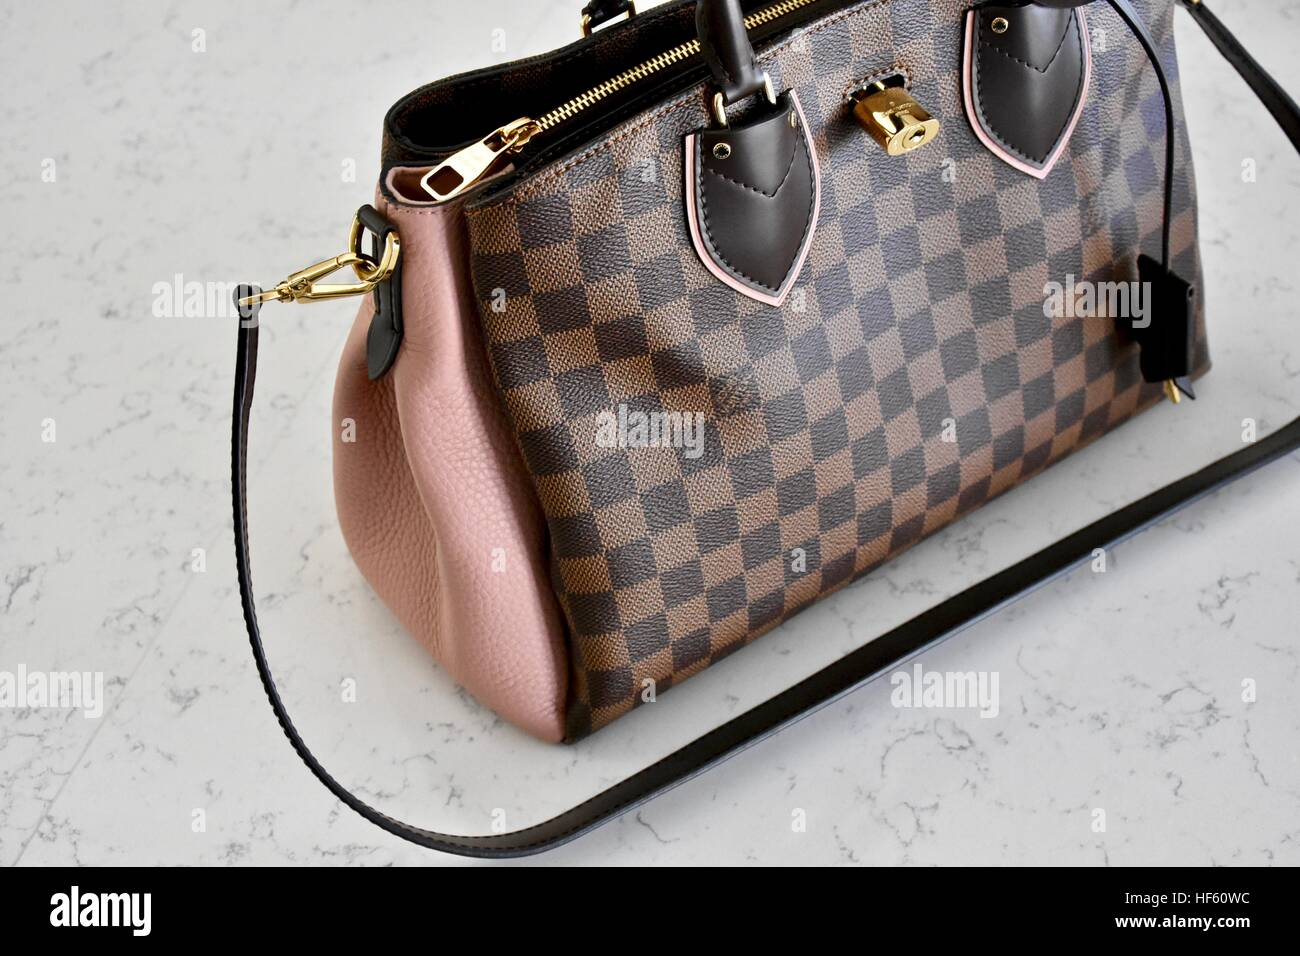 87035a3eae73 A Louis Vuitton handbag displayed on a white carrera marble background -  Stock Image